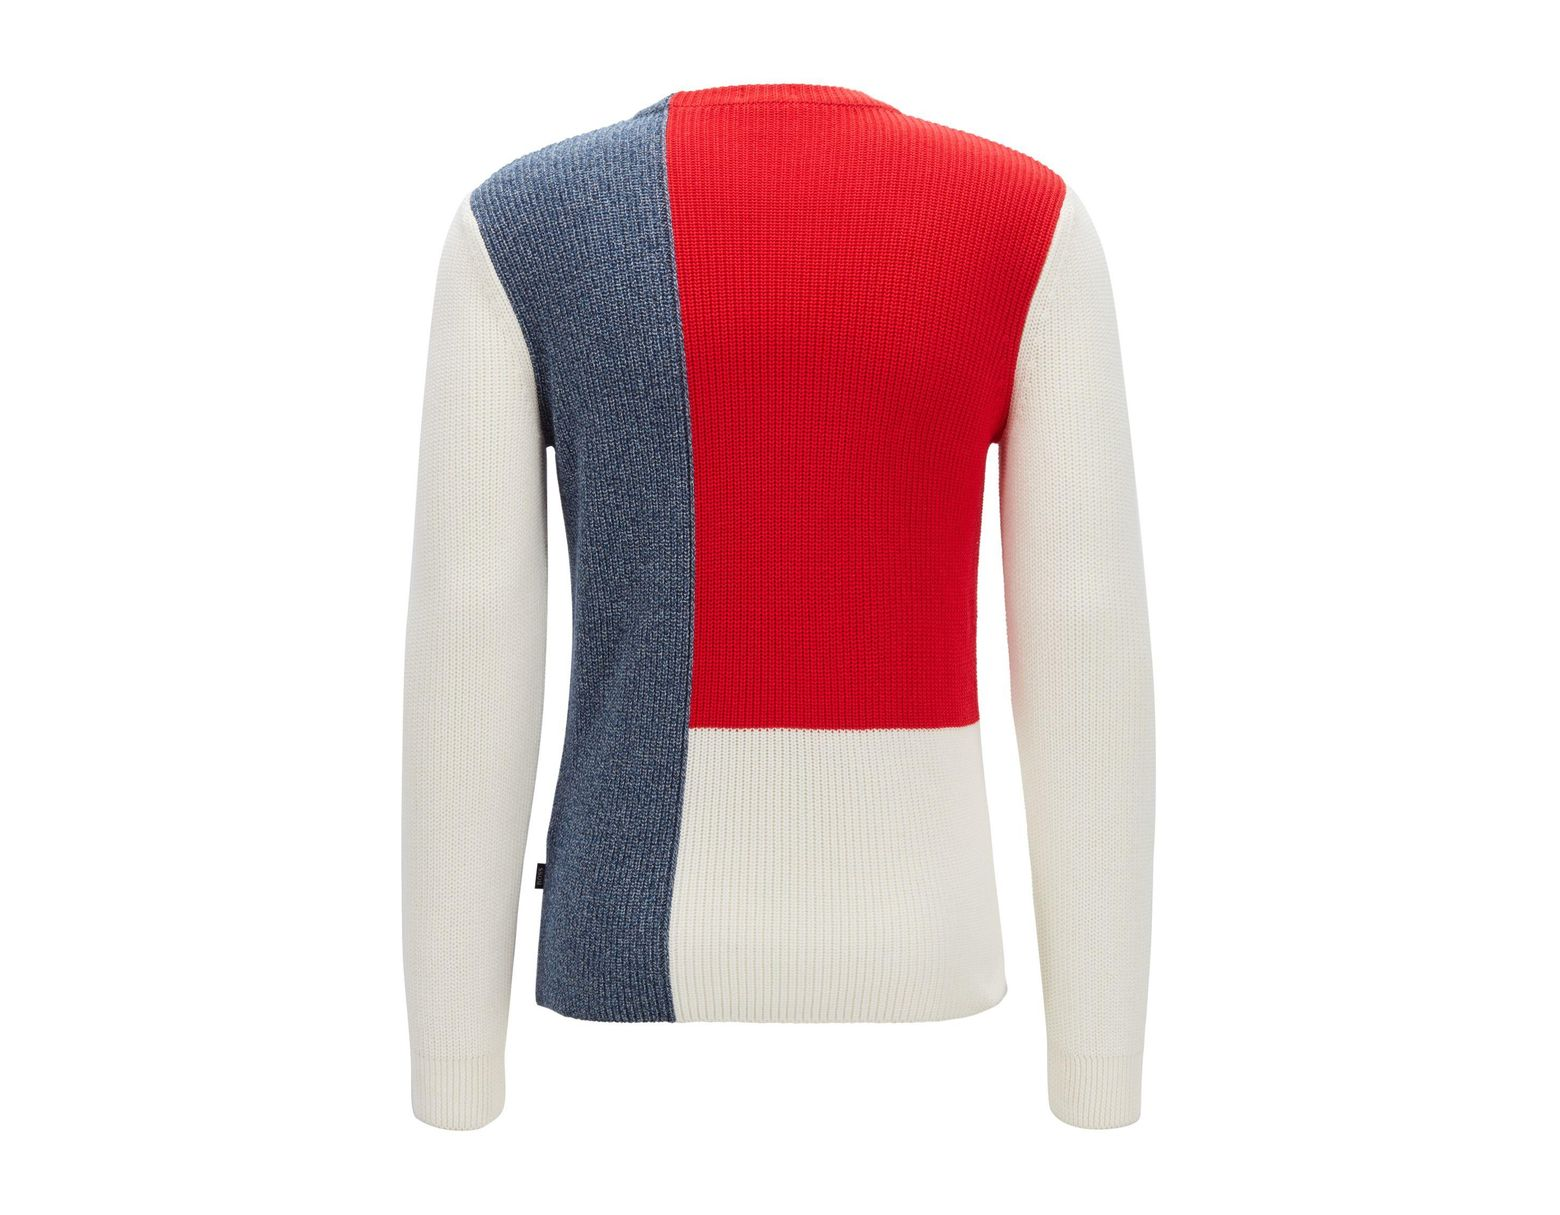 625e155ef94 BOSS Regular-fit Sweater In Cotton With Colour-block Construction in White  for Men - Lyst